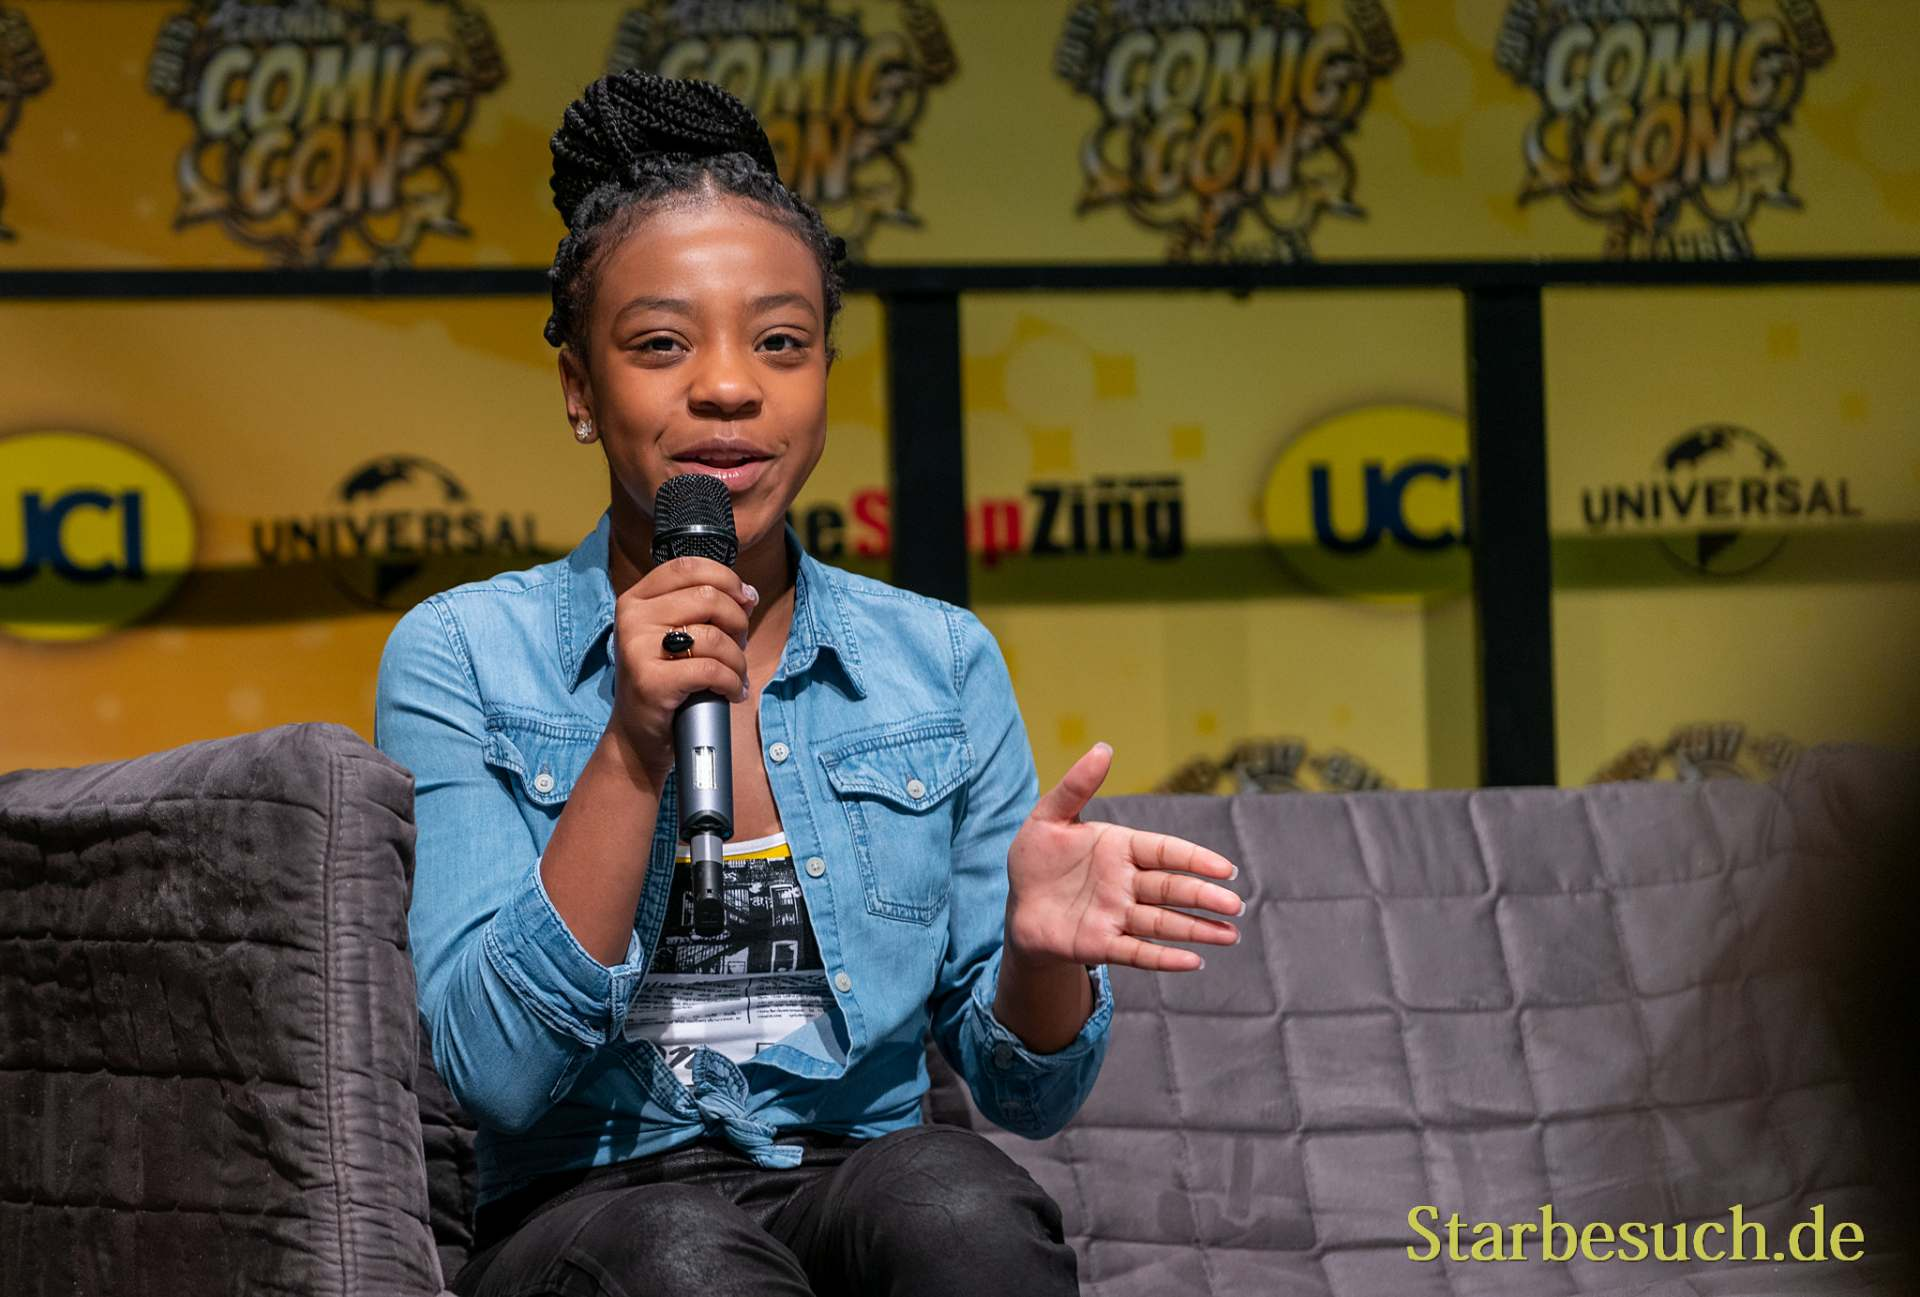 DORTMUND, GERMANY - December 7th 2019: Priah Ferguson at German Comic Con Dortmund